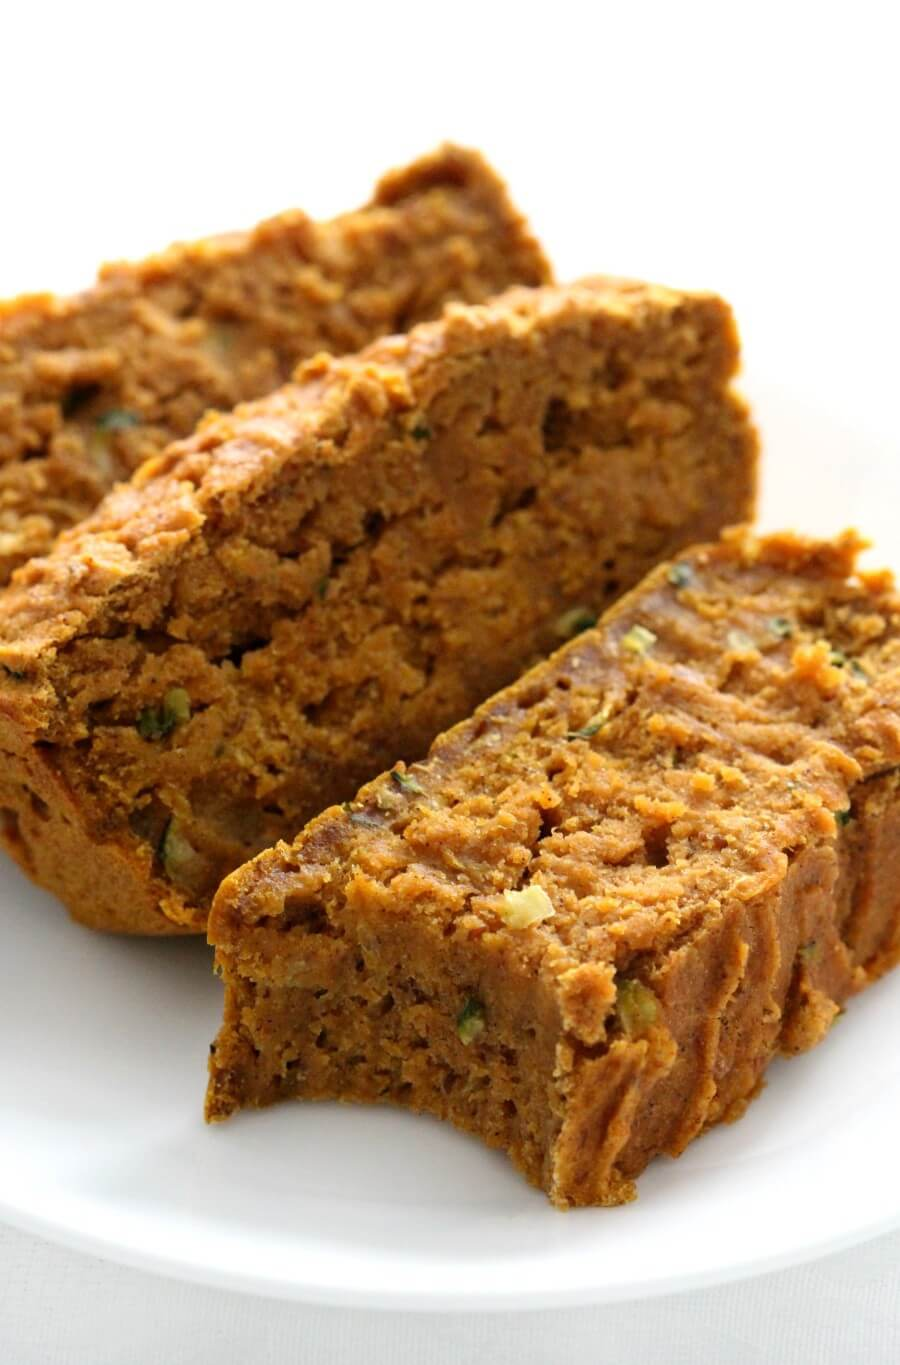 white plate with three slices of gluten-free pumpkin zucchini bread